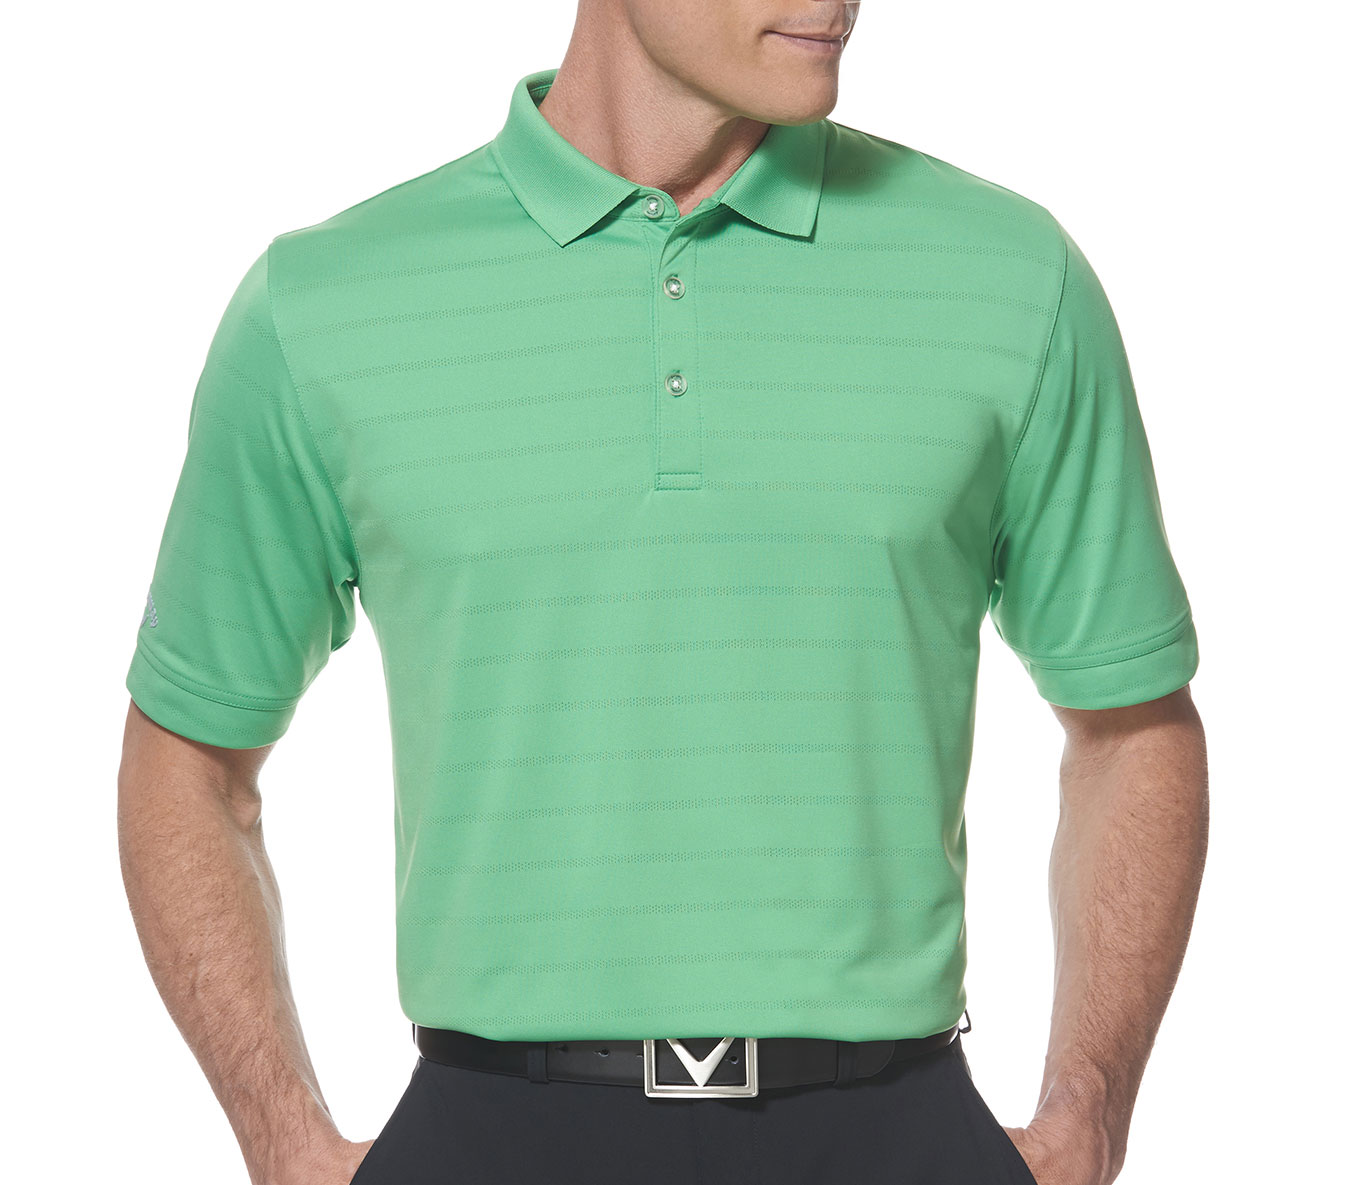 84f28b4b Callaway Mens Opti-Vent Polo - Design Online or Buy It Blank